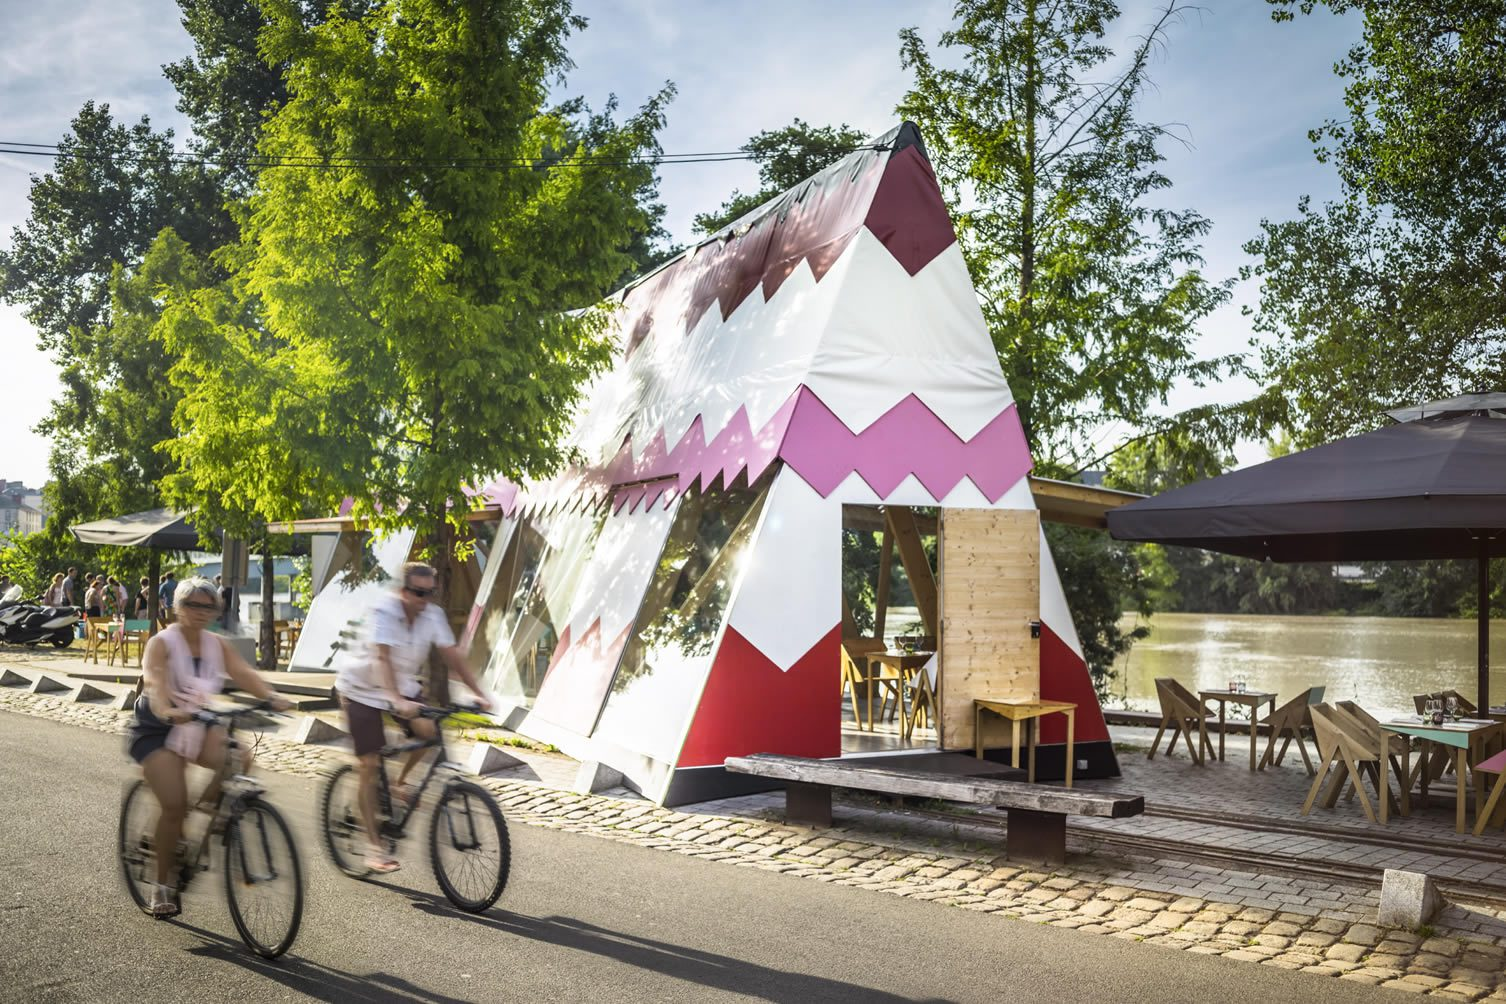 Le Voyage A Nantes 2016 Installations And Public Art